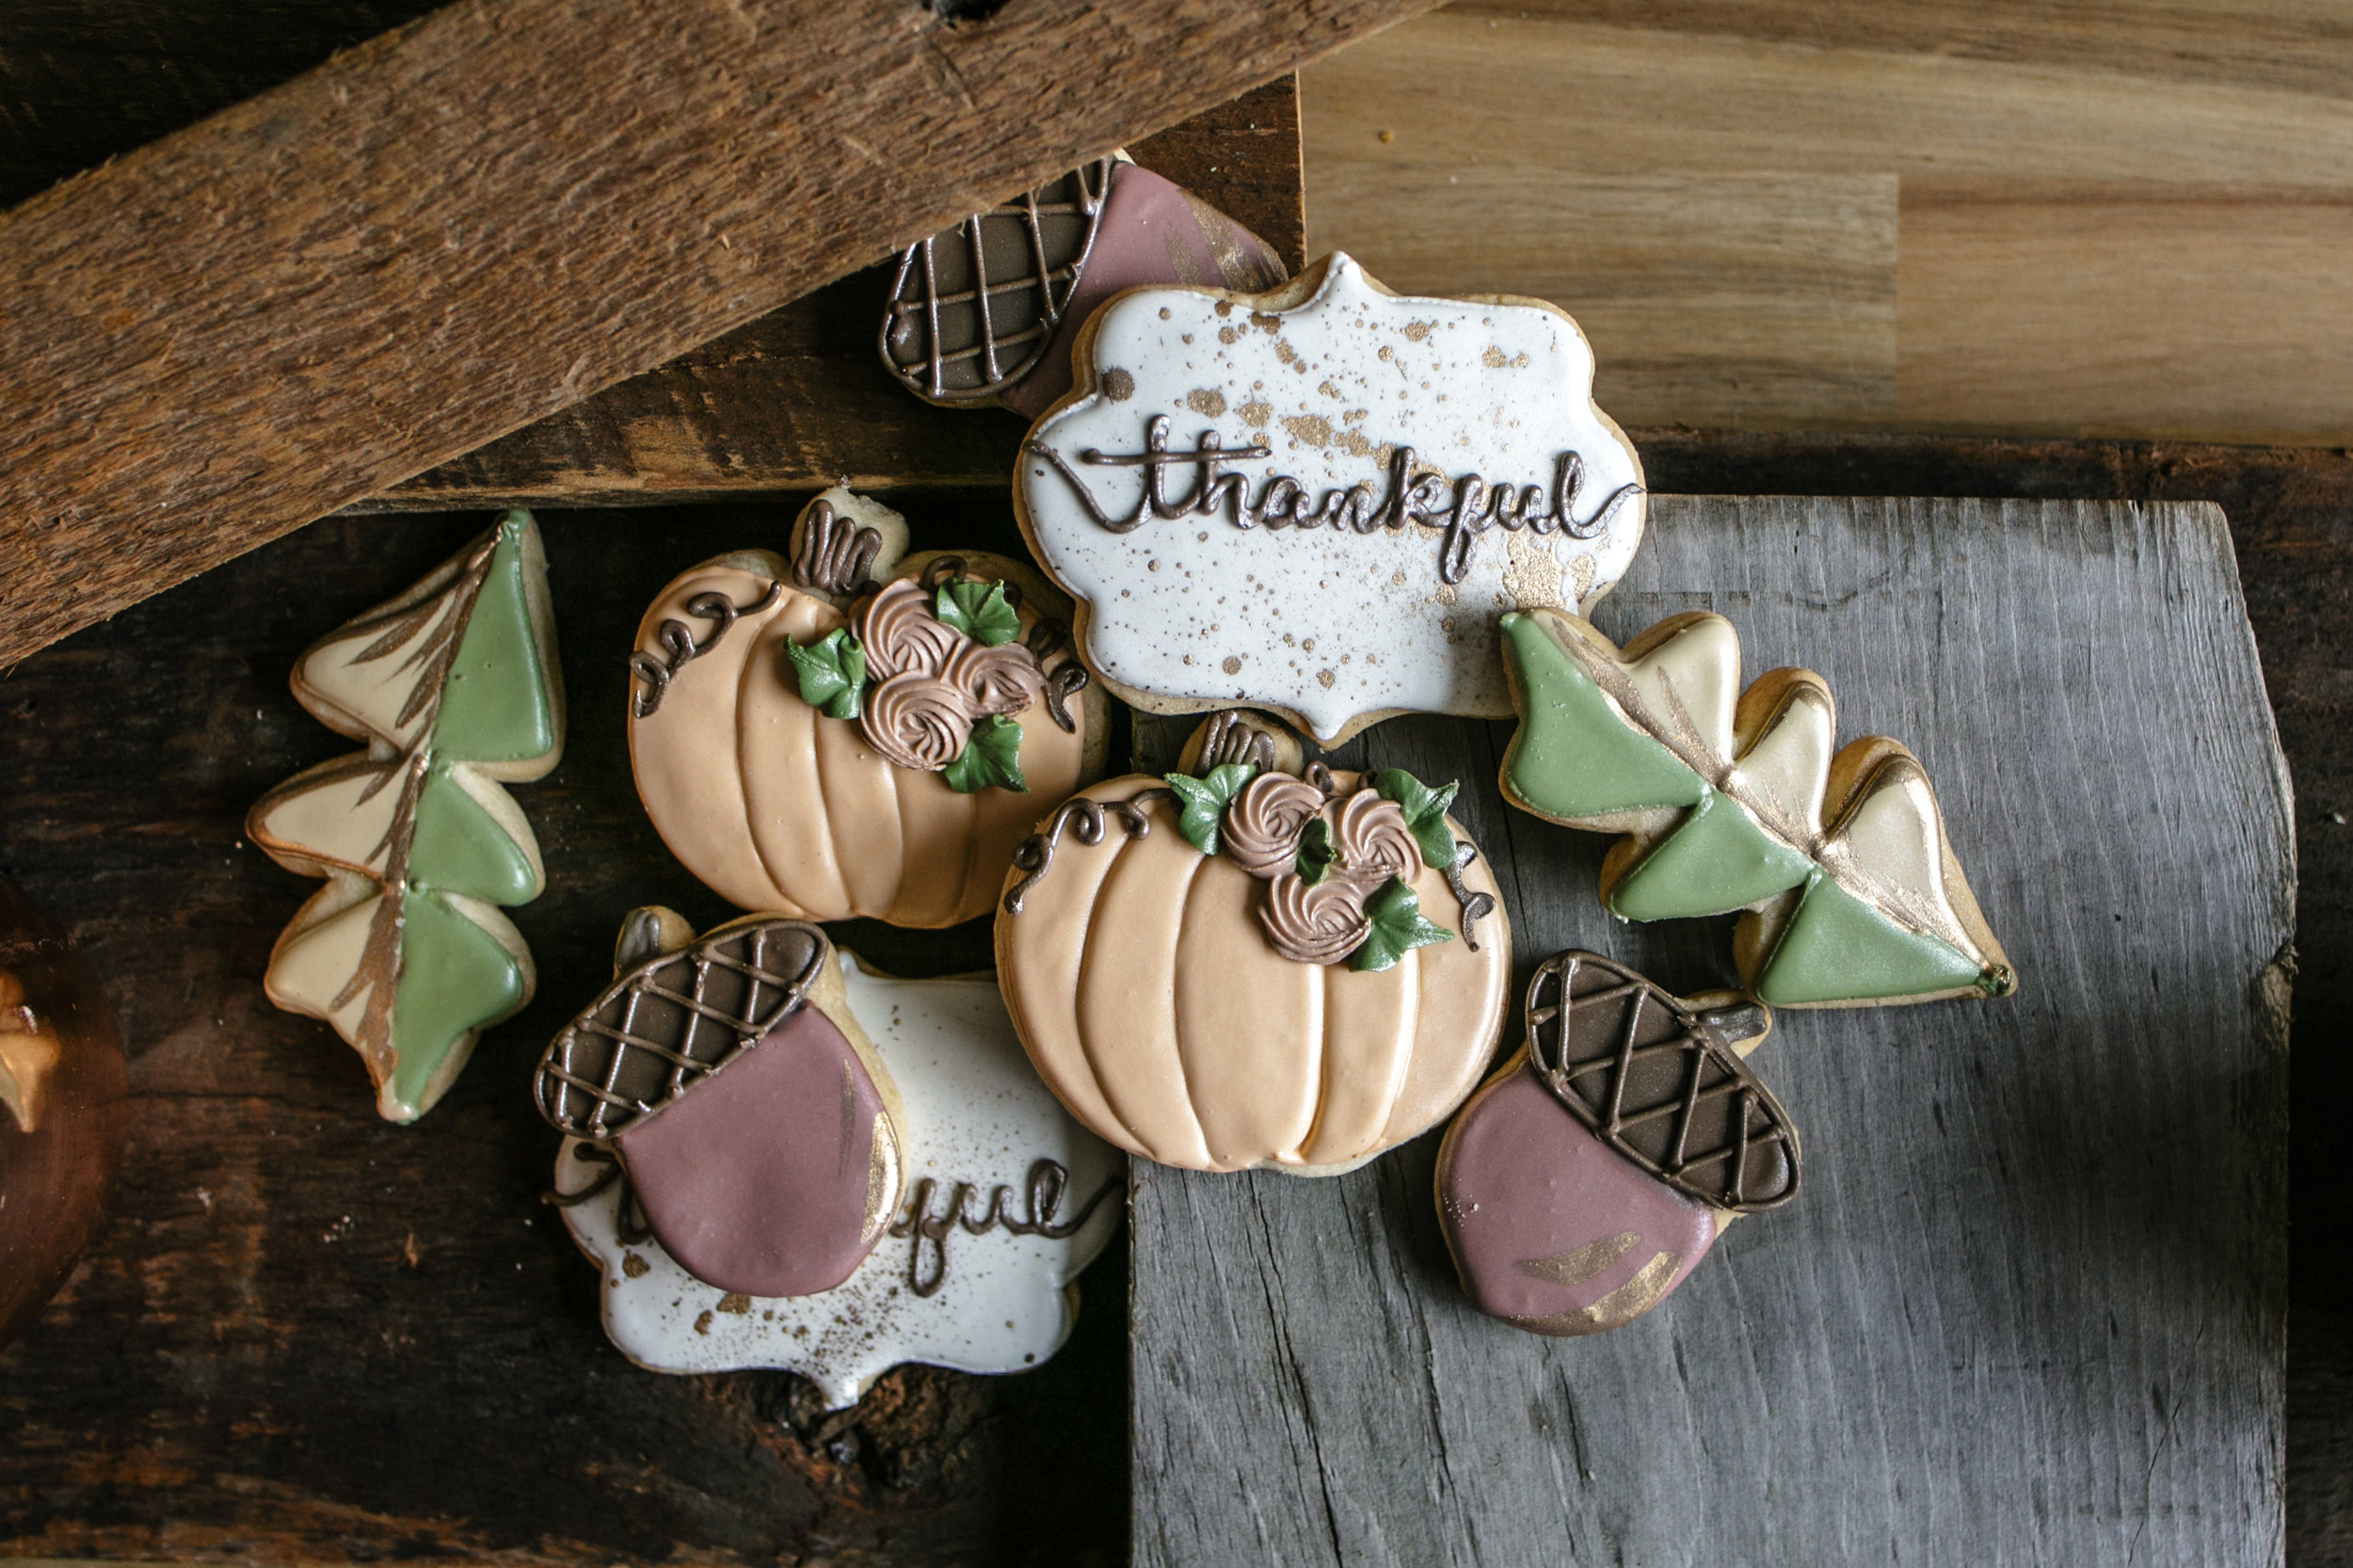 thankful cookies 2.jpg